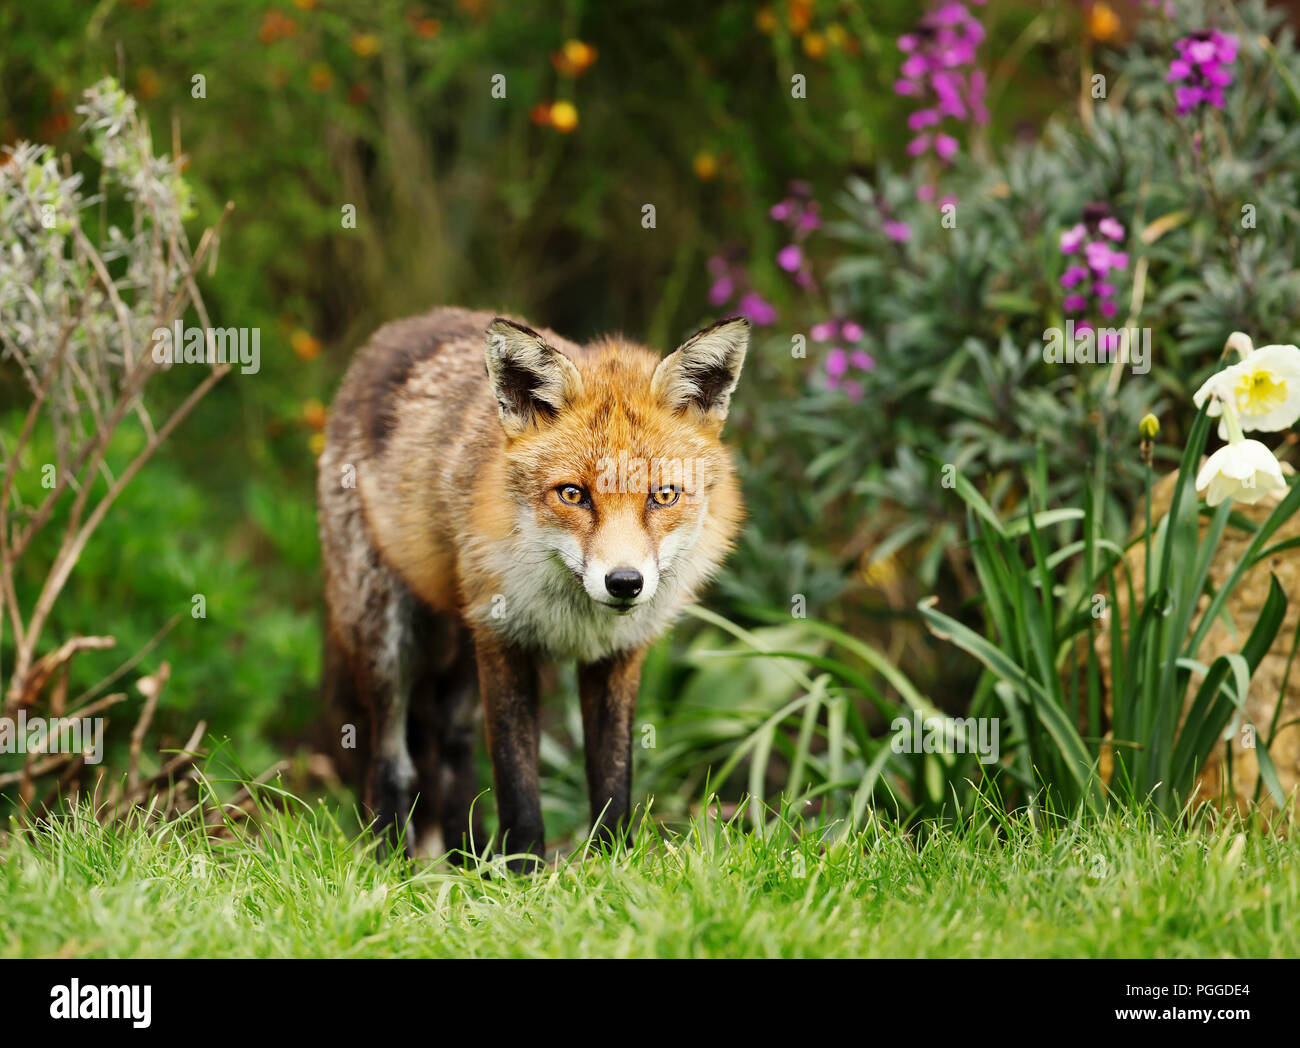 Red fox standing in the garden with flowers, spring in UK. Stock Photo